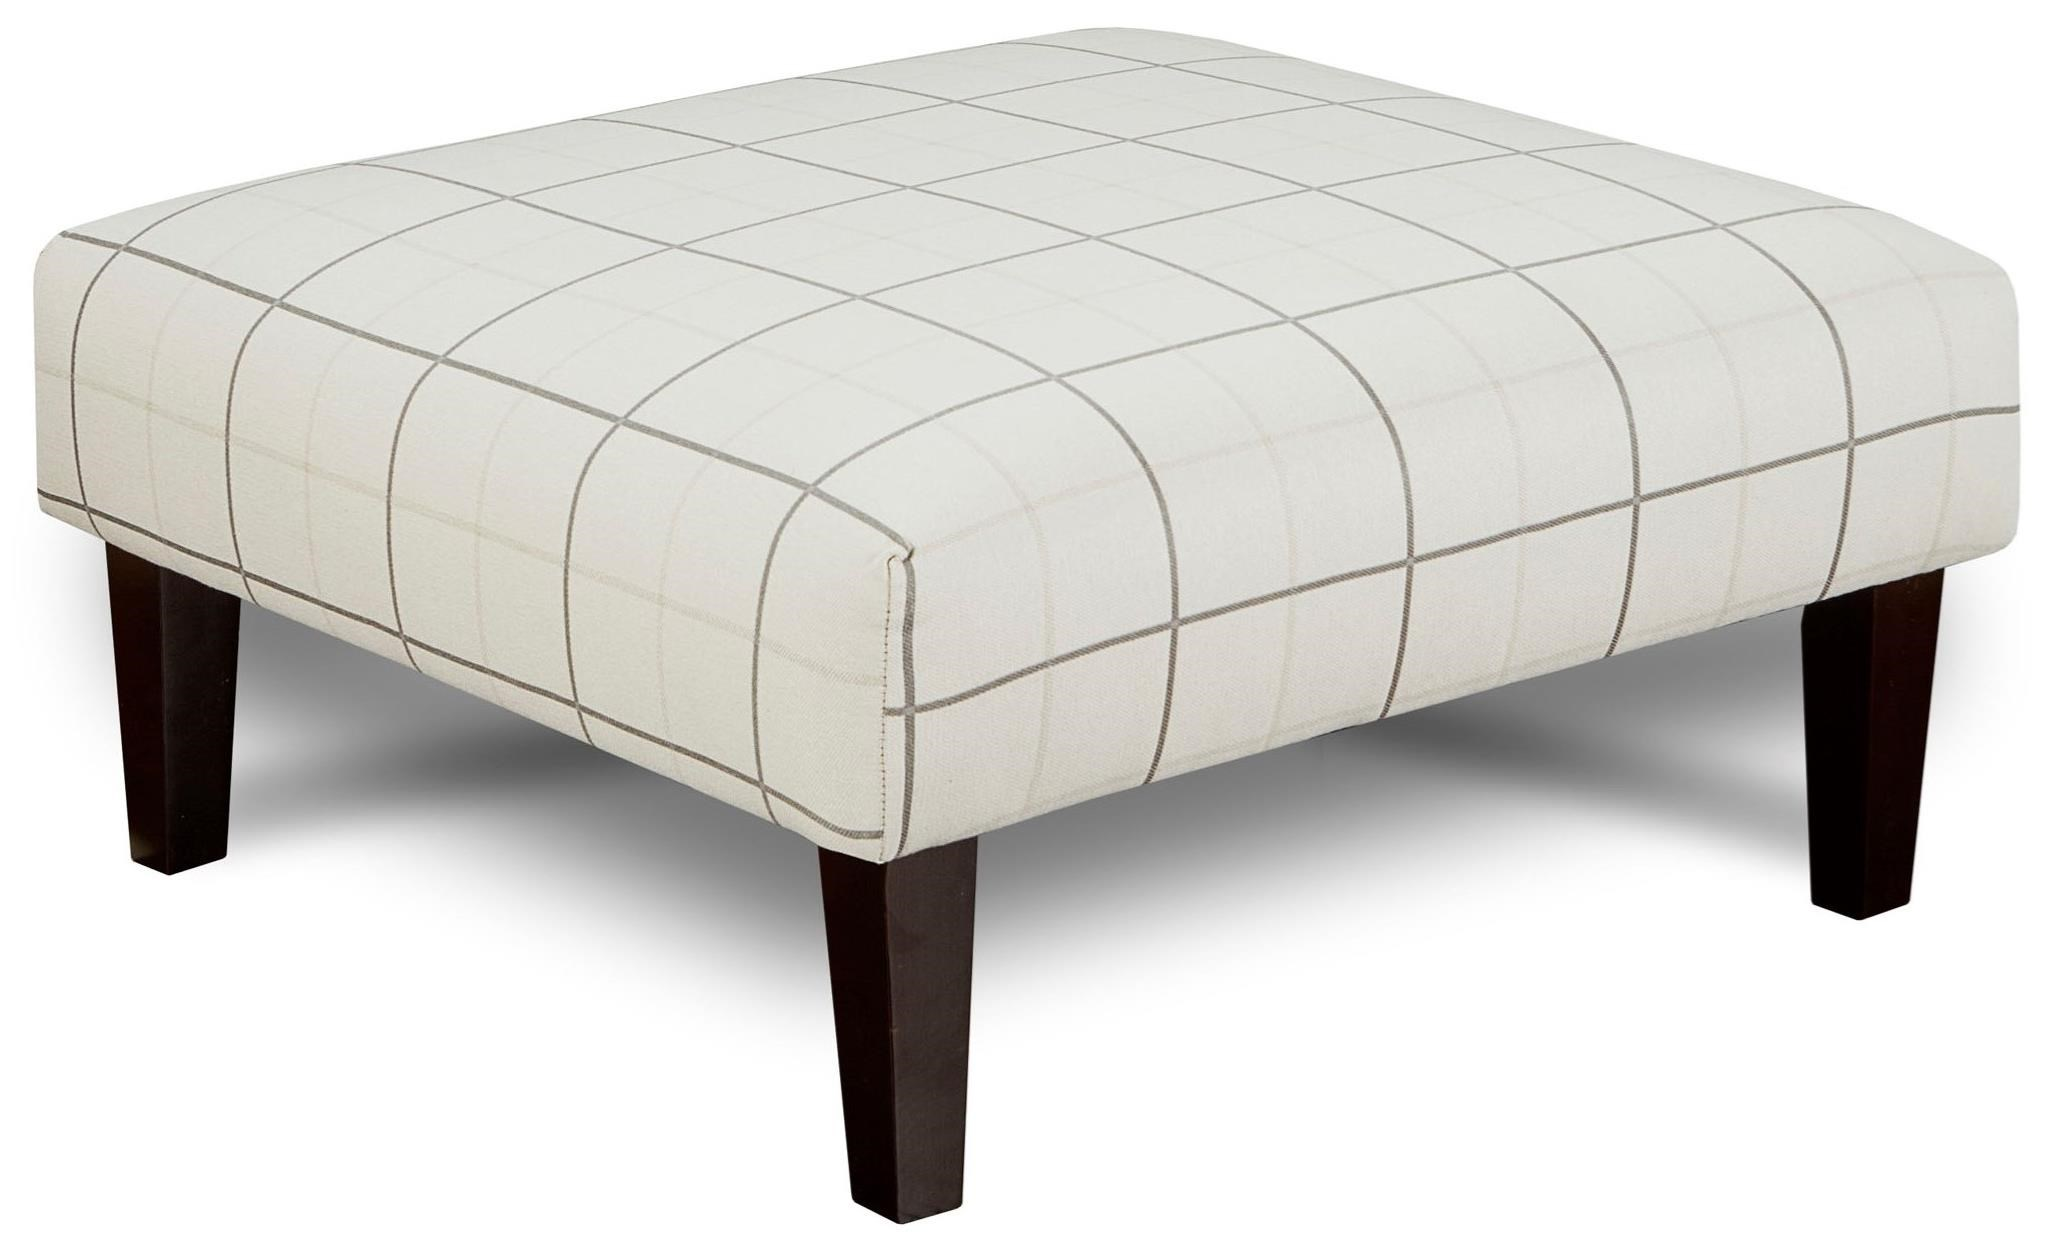 Fusion Furniture 159 Cocktail Ottoman - Item Number: 159Windowpane Chalk